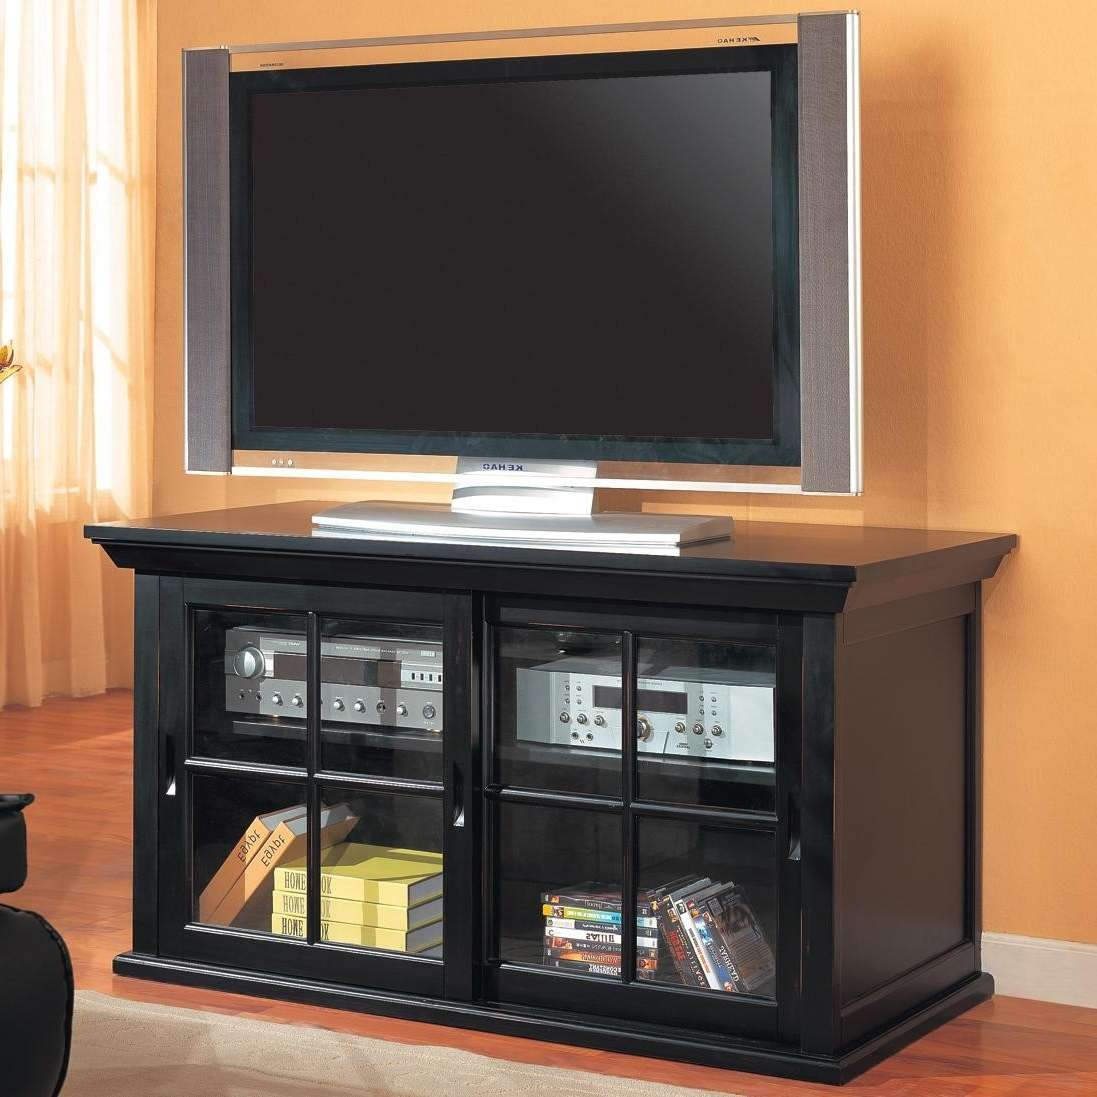 Tv Stands Transitional Media Console With Sliding Glass Doors Regarding Wooden Tv Cabinets With Glass Doors (View 18 of 20)